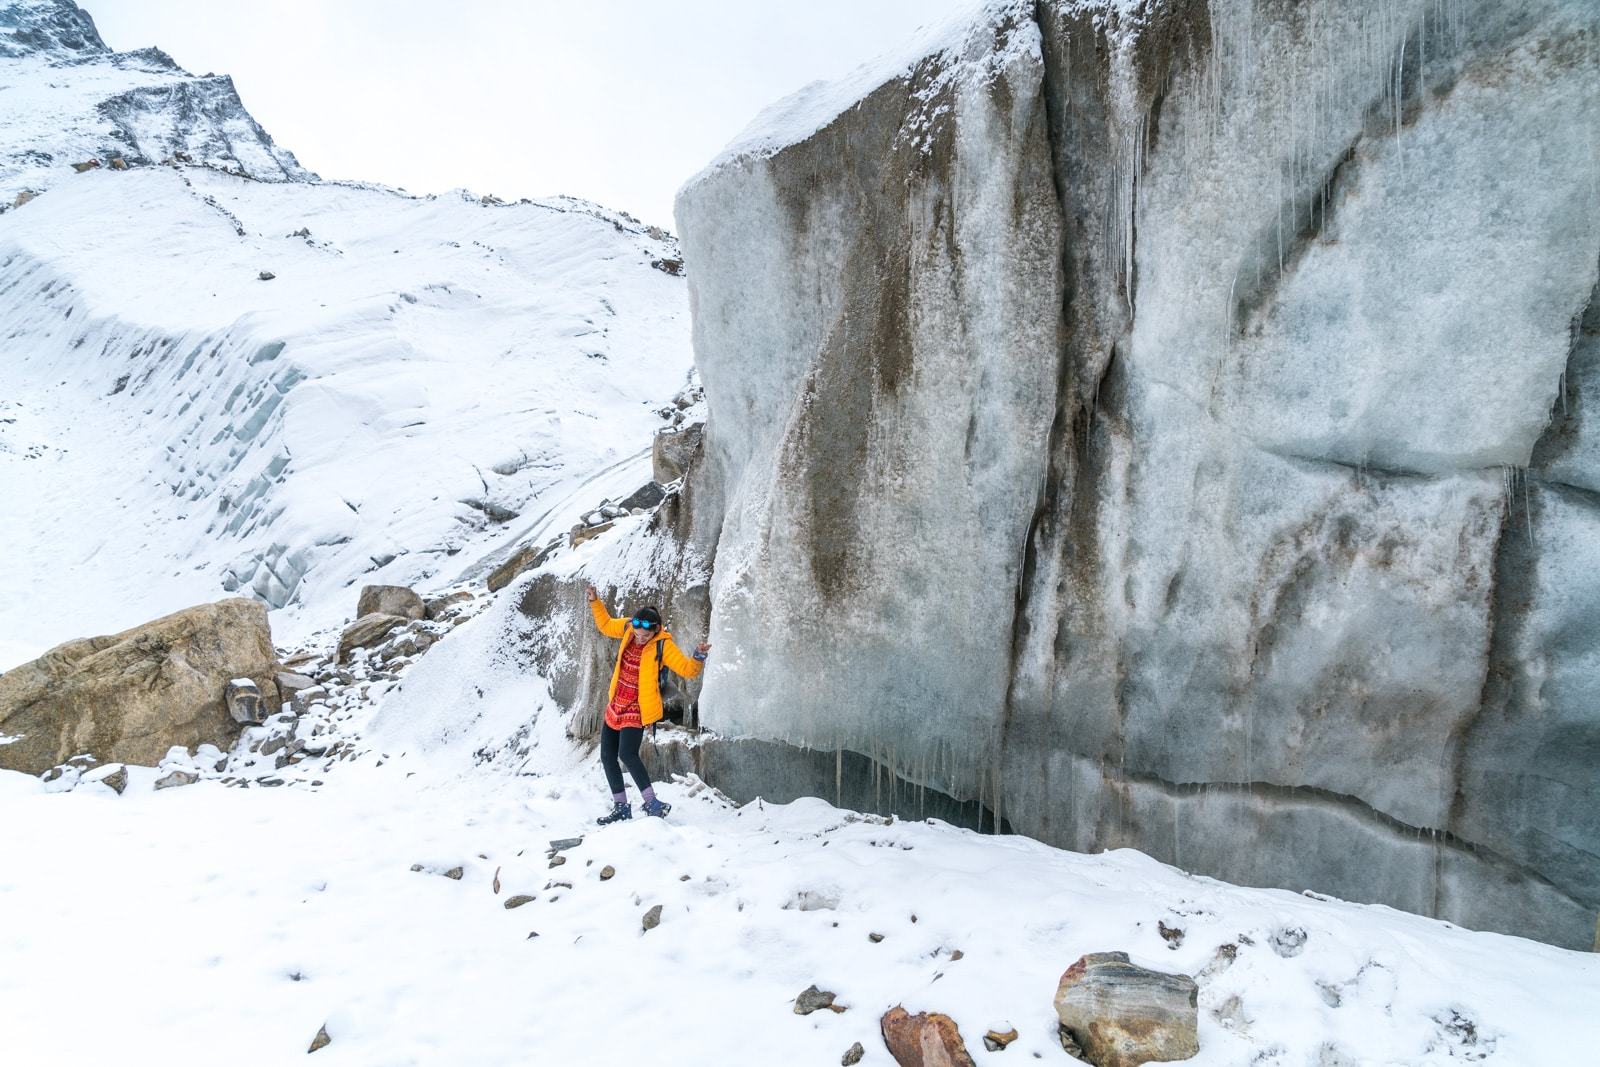 Trekking to the start of the Ganges River in Uttarakhand, India - Doing a happy dance at the glacier - Lost With Purpose travel blog